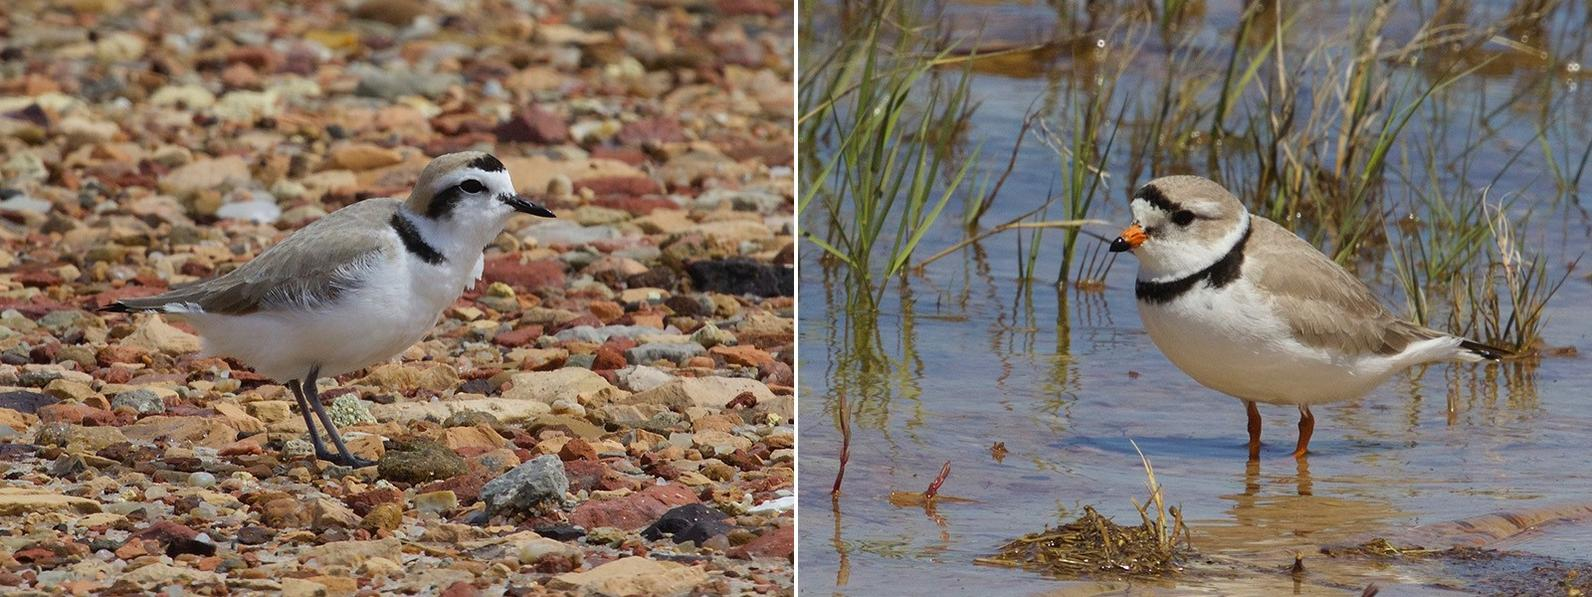 Snowy Plover left, Piping Plover right